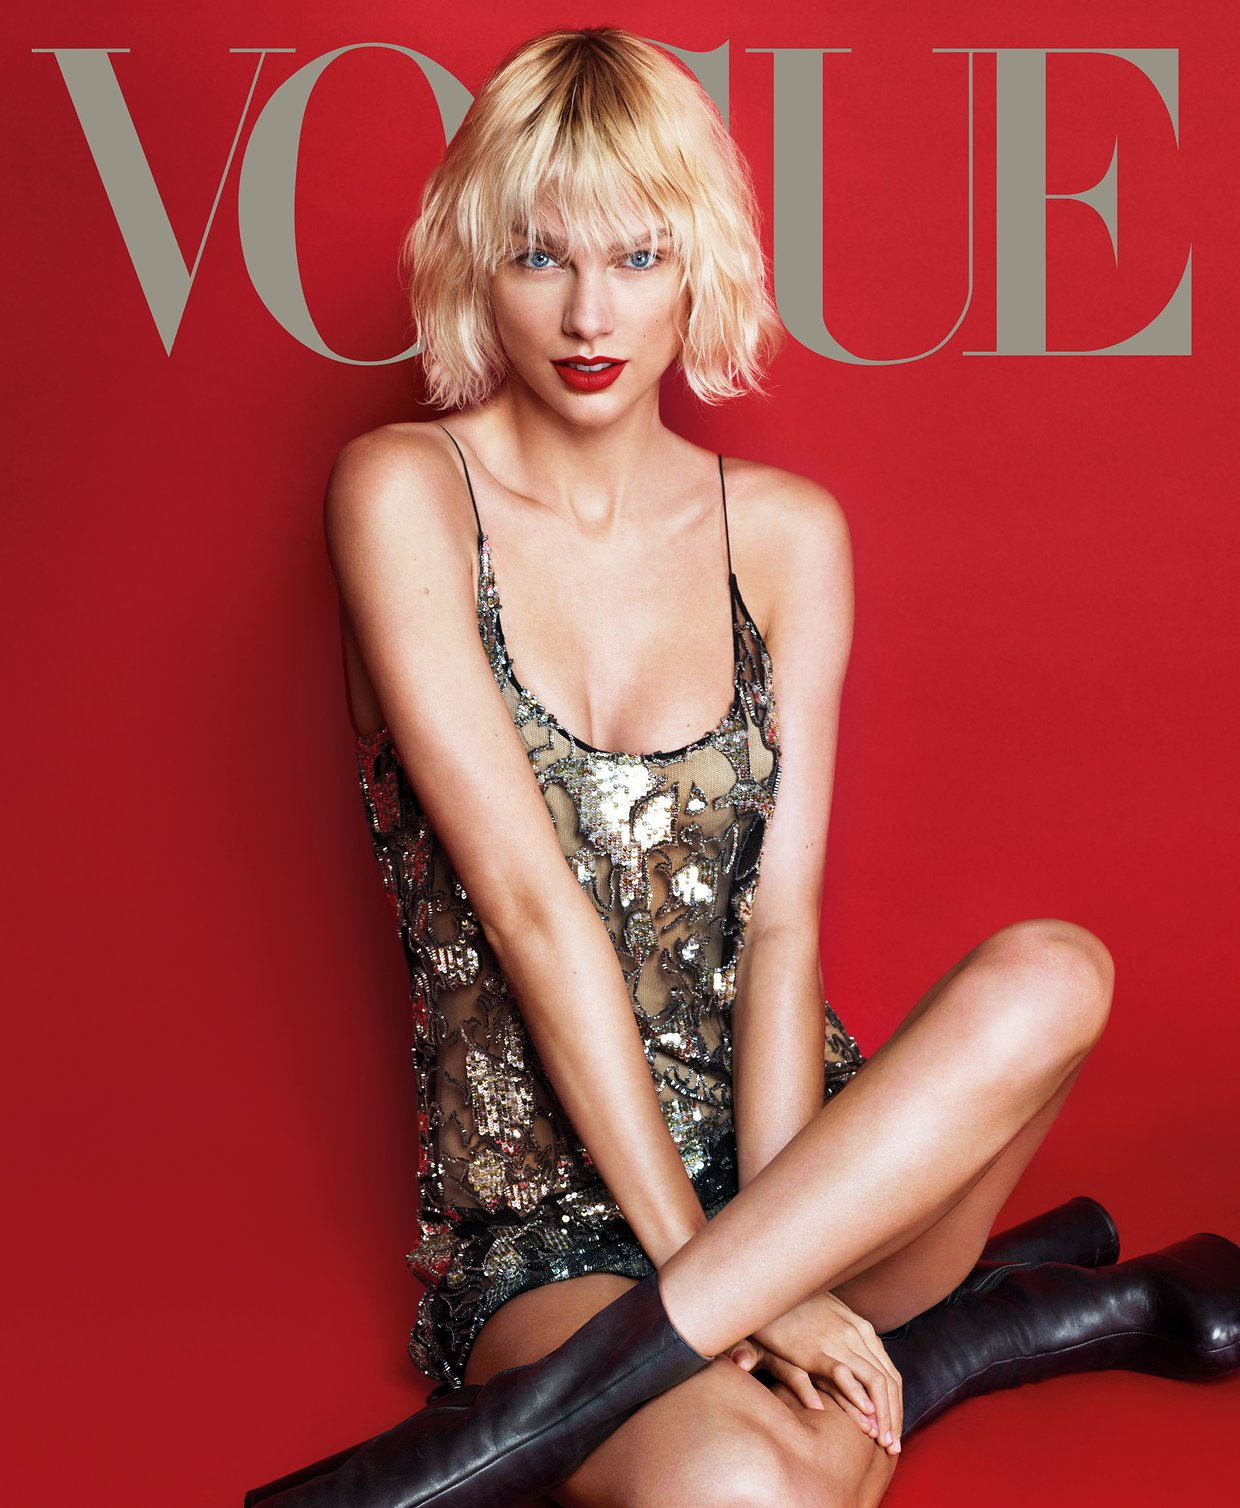 Taylor Swift Looks Unrecognizable on the Cover of Vogue